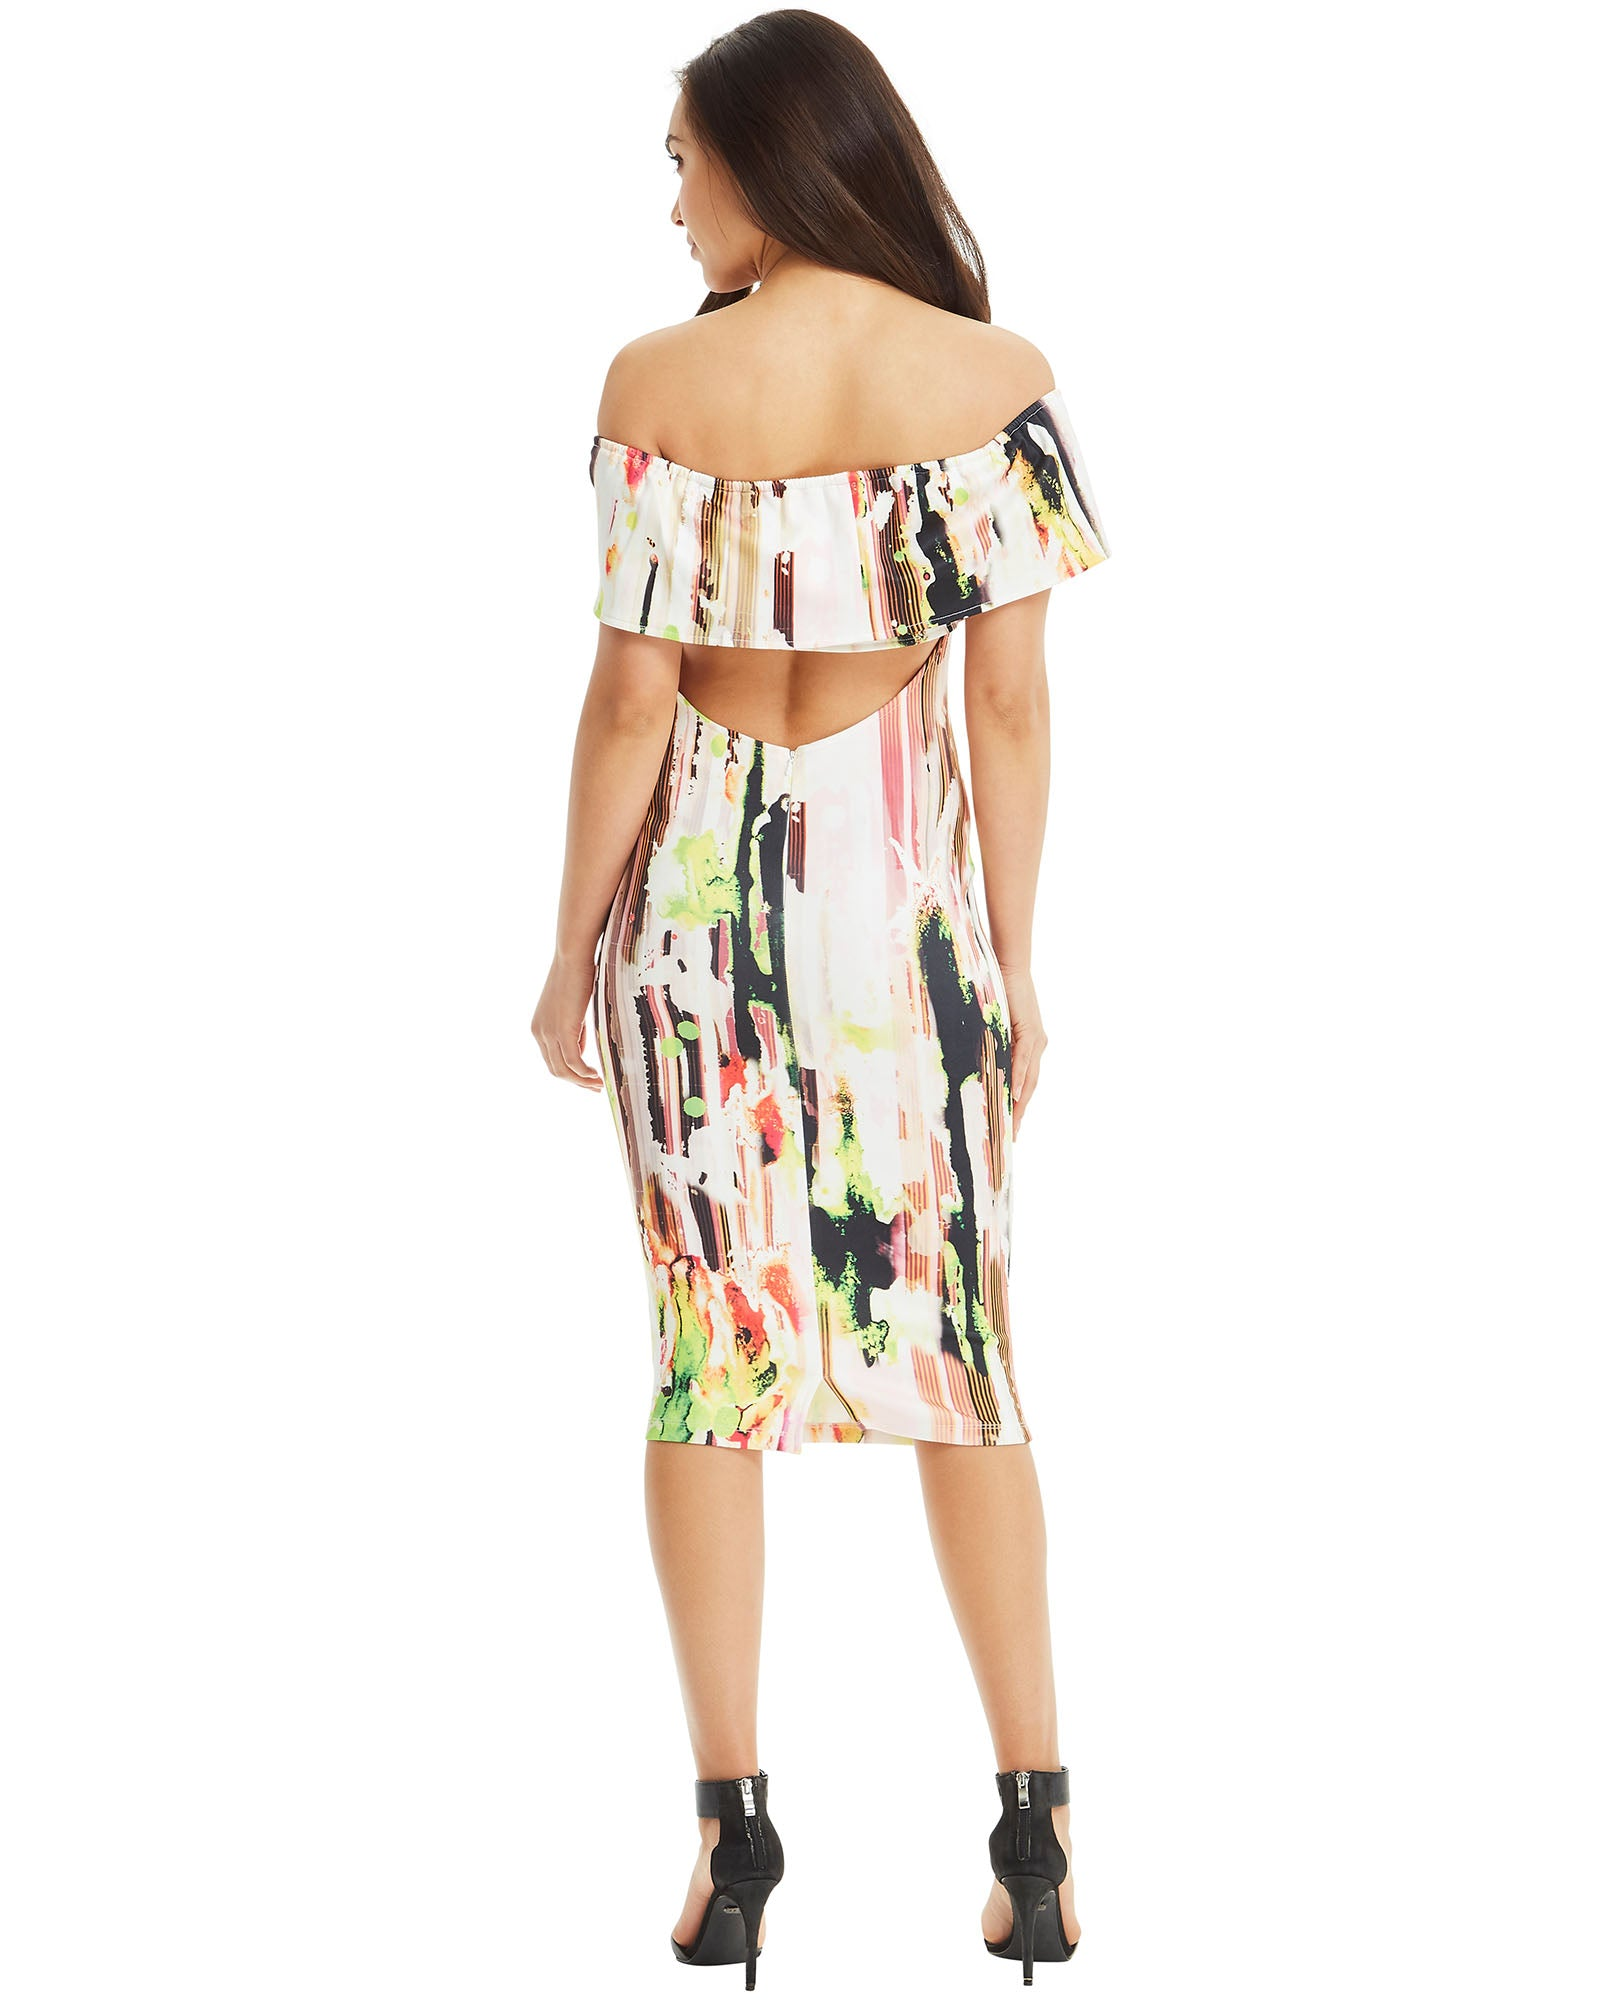 SKIVA multi abstract print off shoulder dress strapless stretch fabric zipper knee length midi elastane band slit work party cocktail body hugging